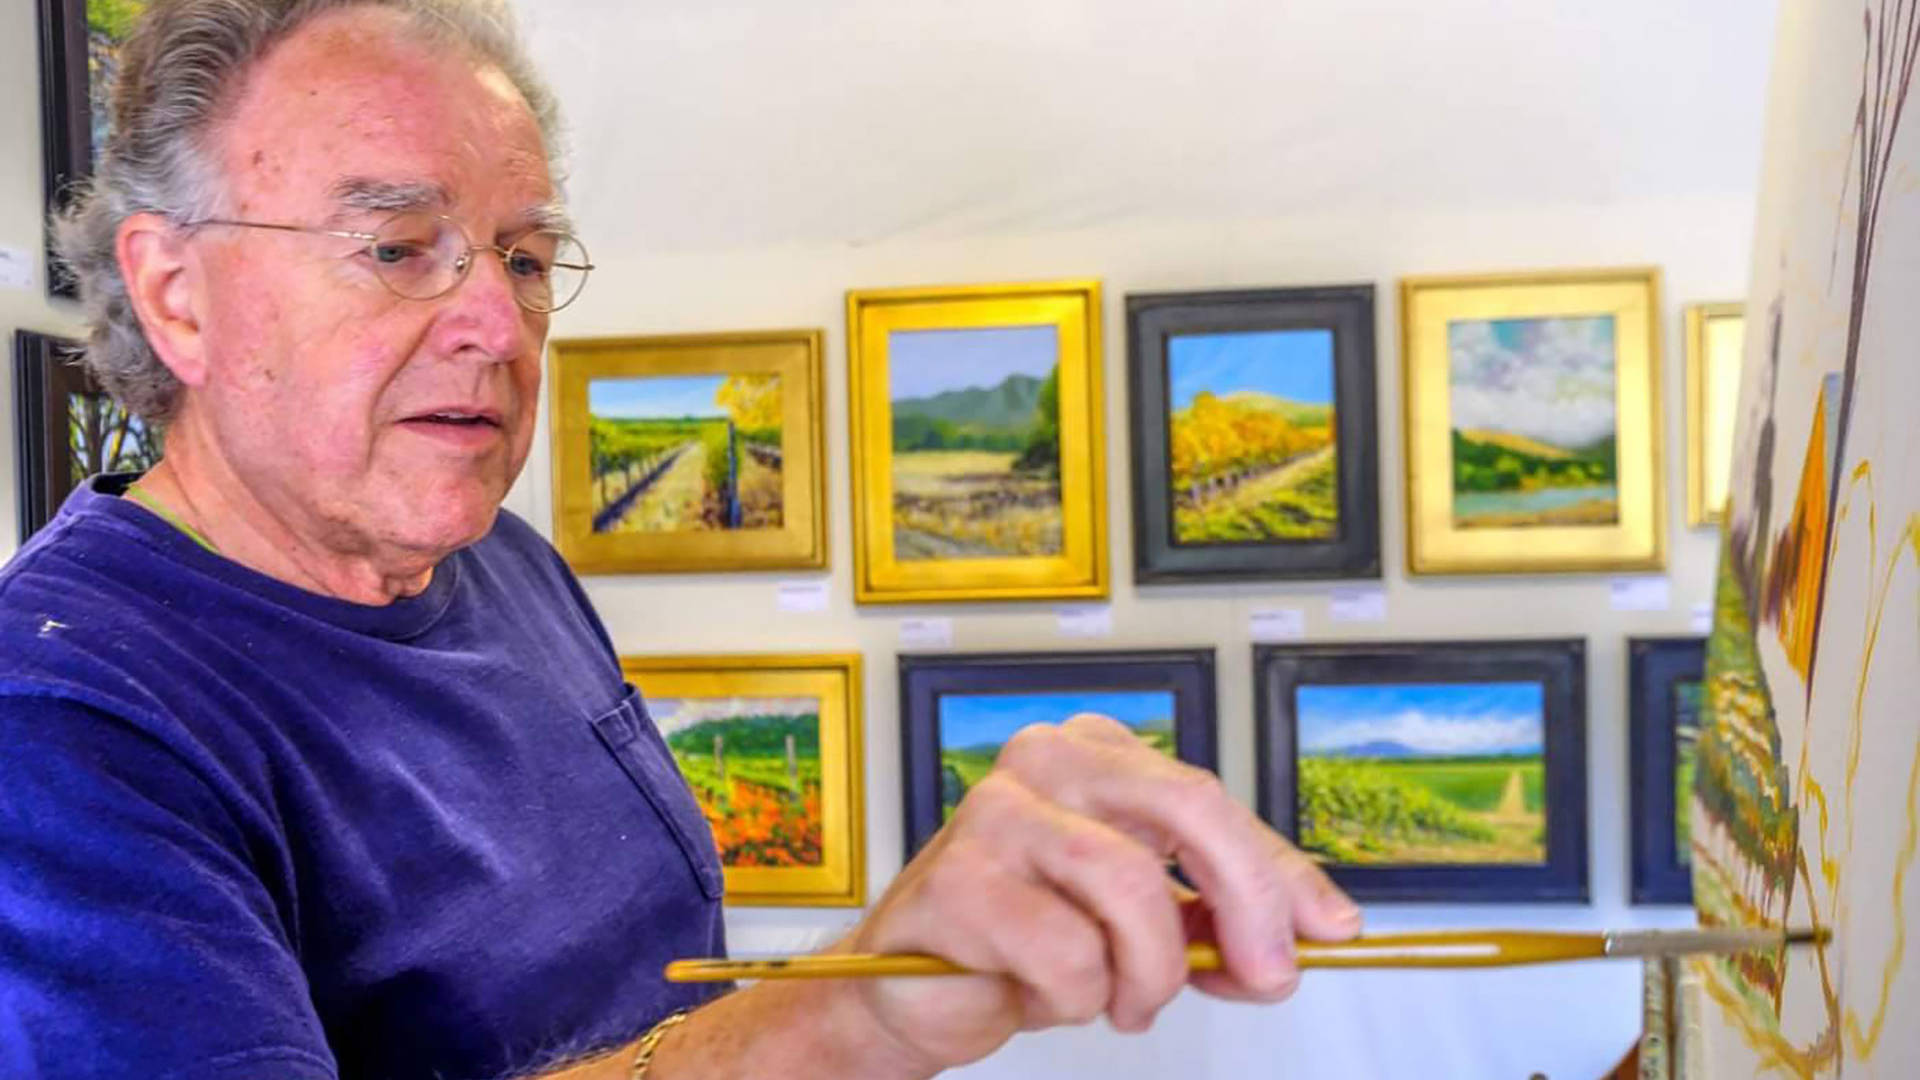 Bill Gittins had been gearing up for the annual open-studios tour ArtTrails when he lost his home and all his paintings in the fire. Jeff Kan Lee